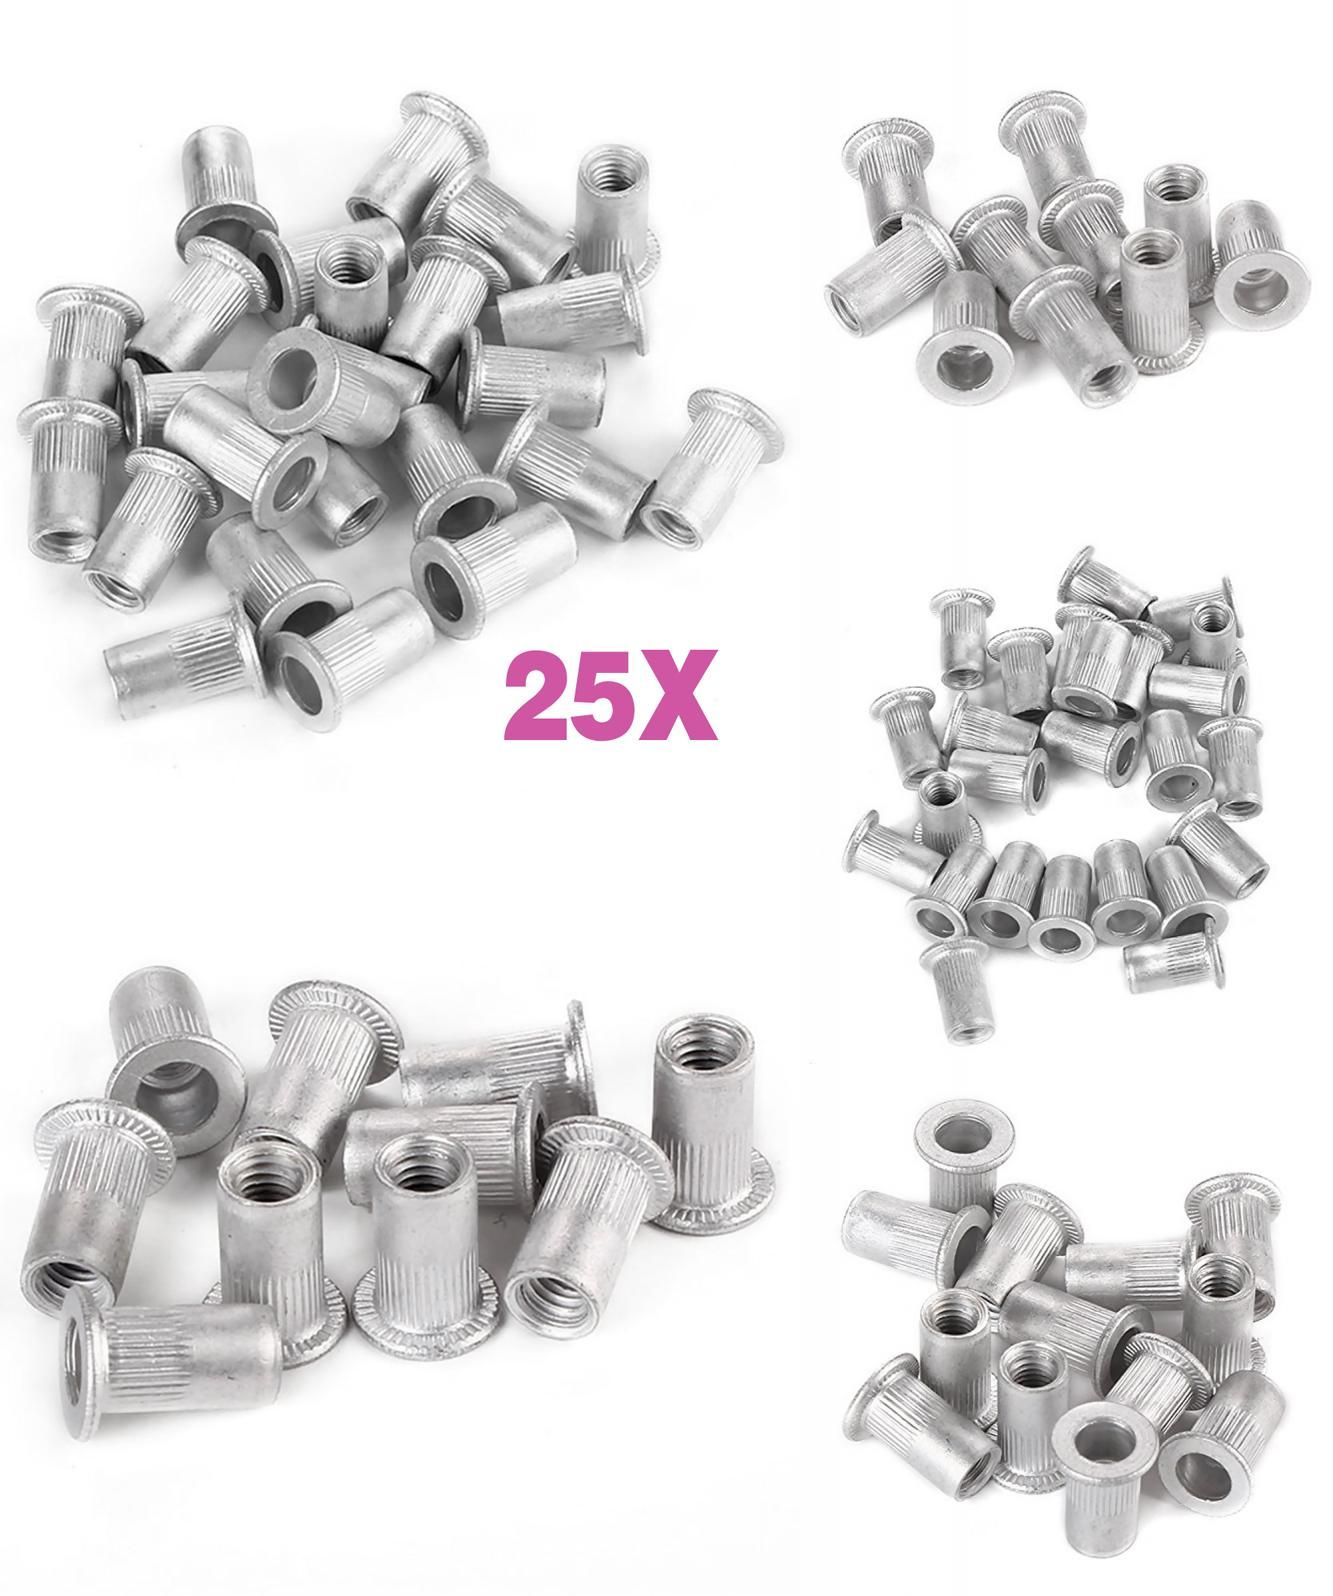 Visit To Buy 25pcs M5 Flat Head Aluminum Rivets Nuts Threaded Inserts Nutserts Rivnut Clh Advertisement Flat Head Stuff To Buy Rivets